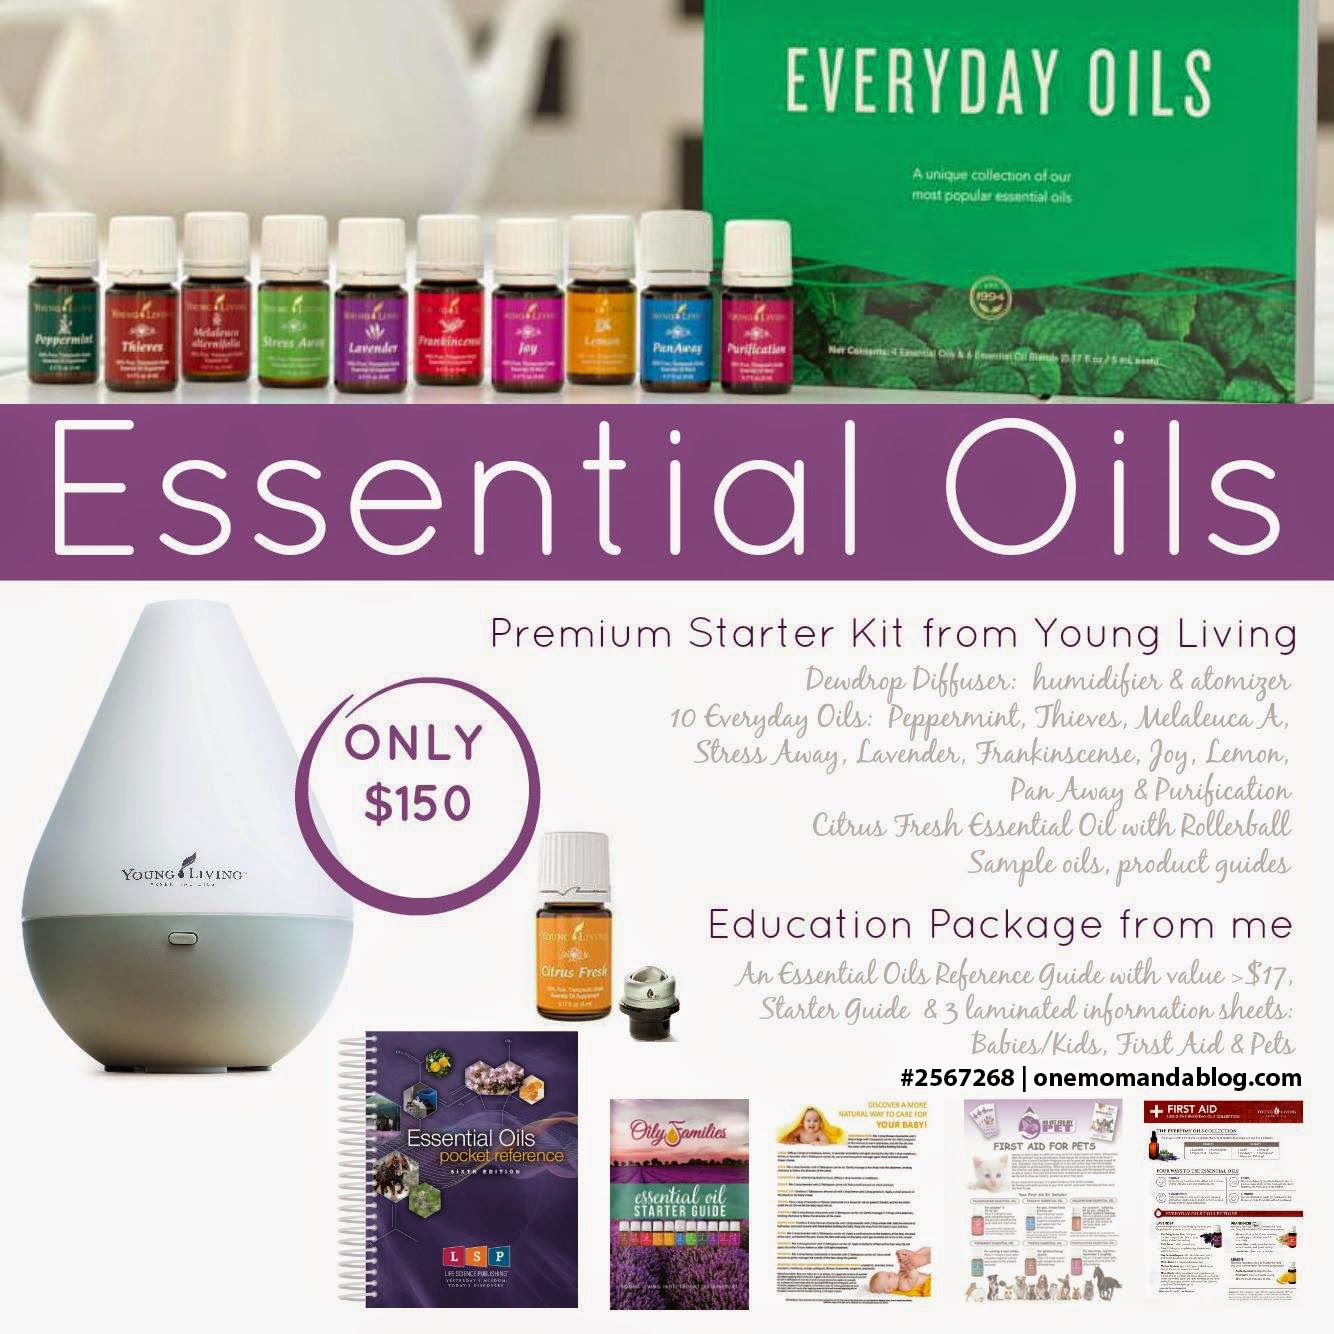 Premium Starter Kit from Young Living